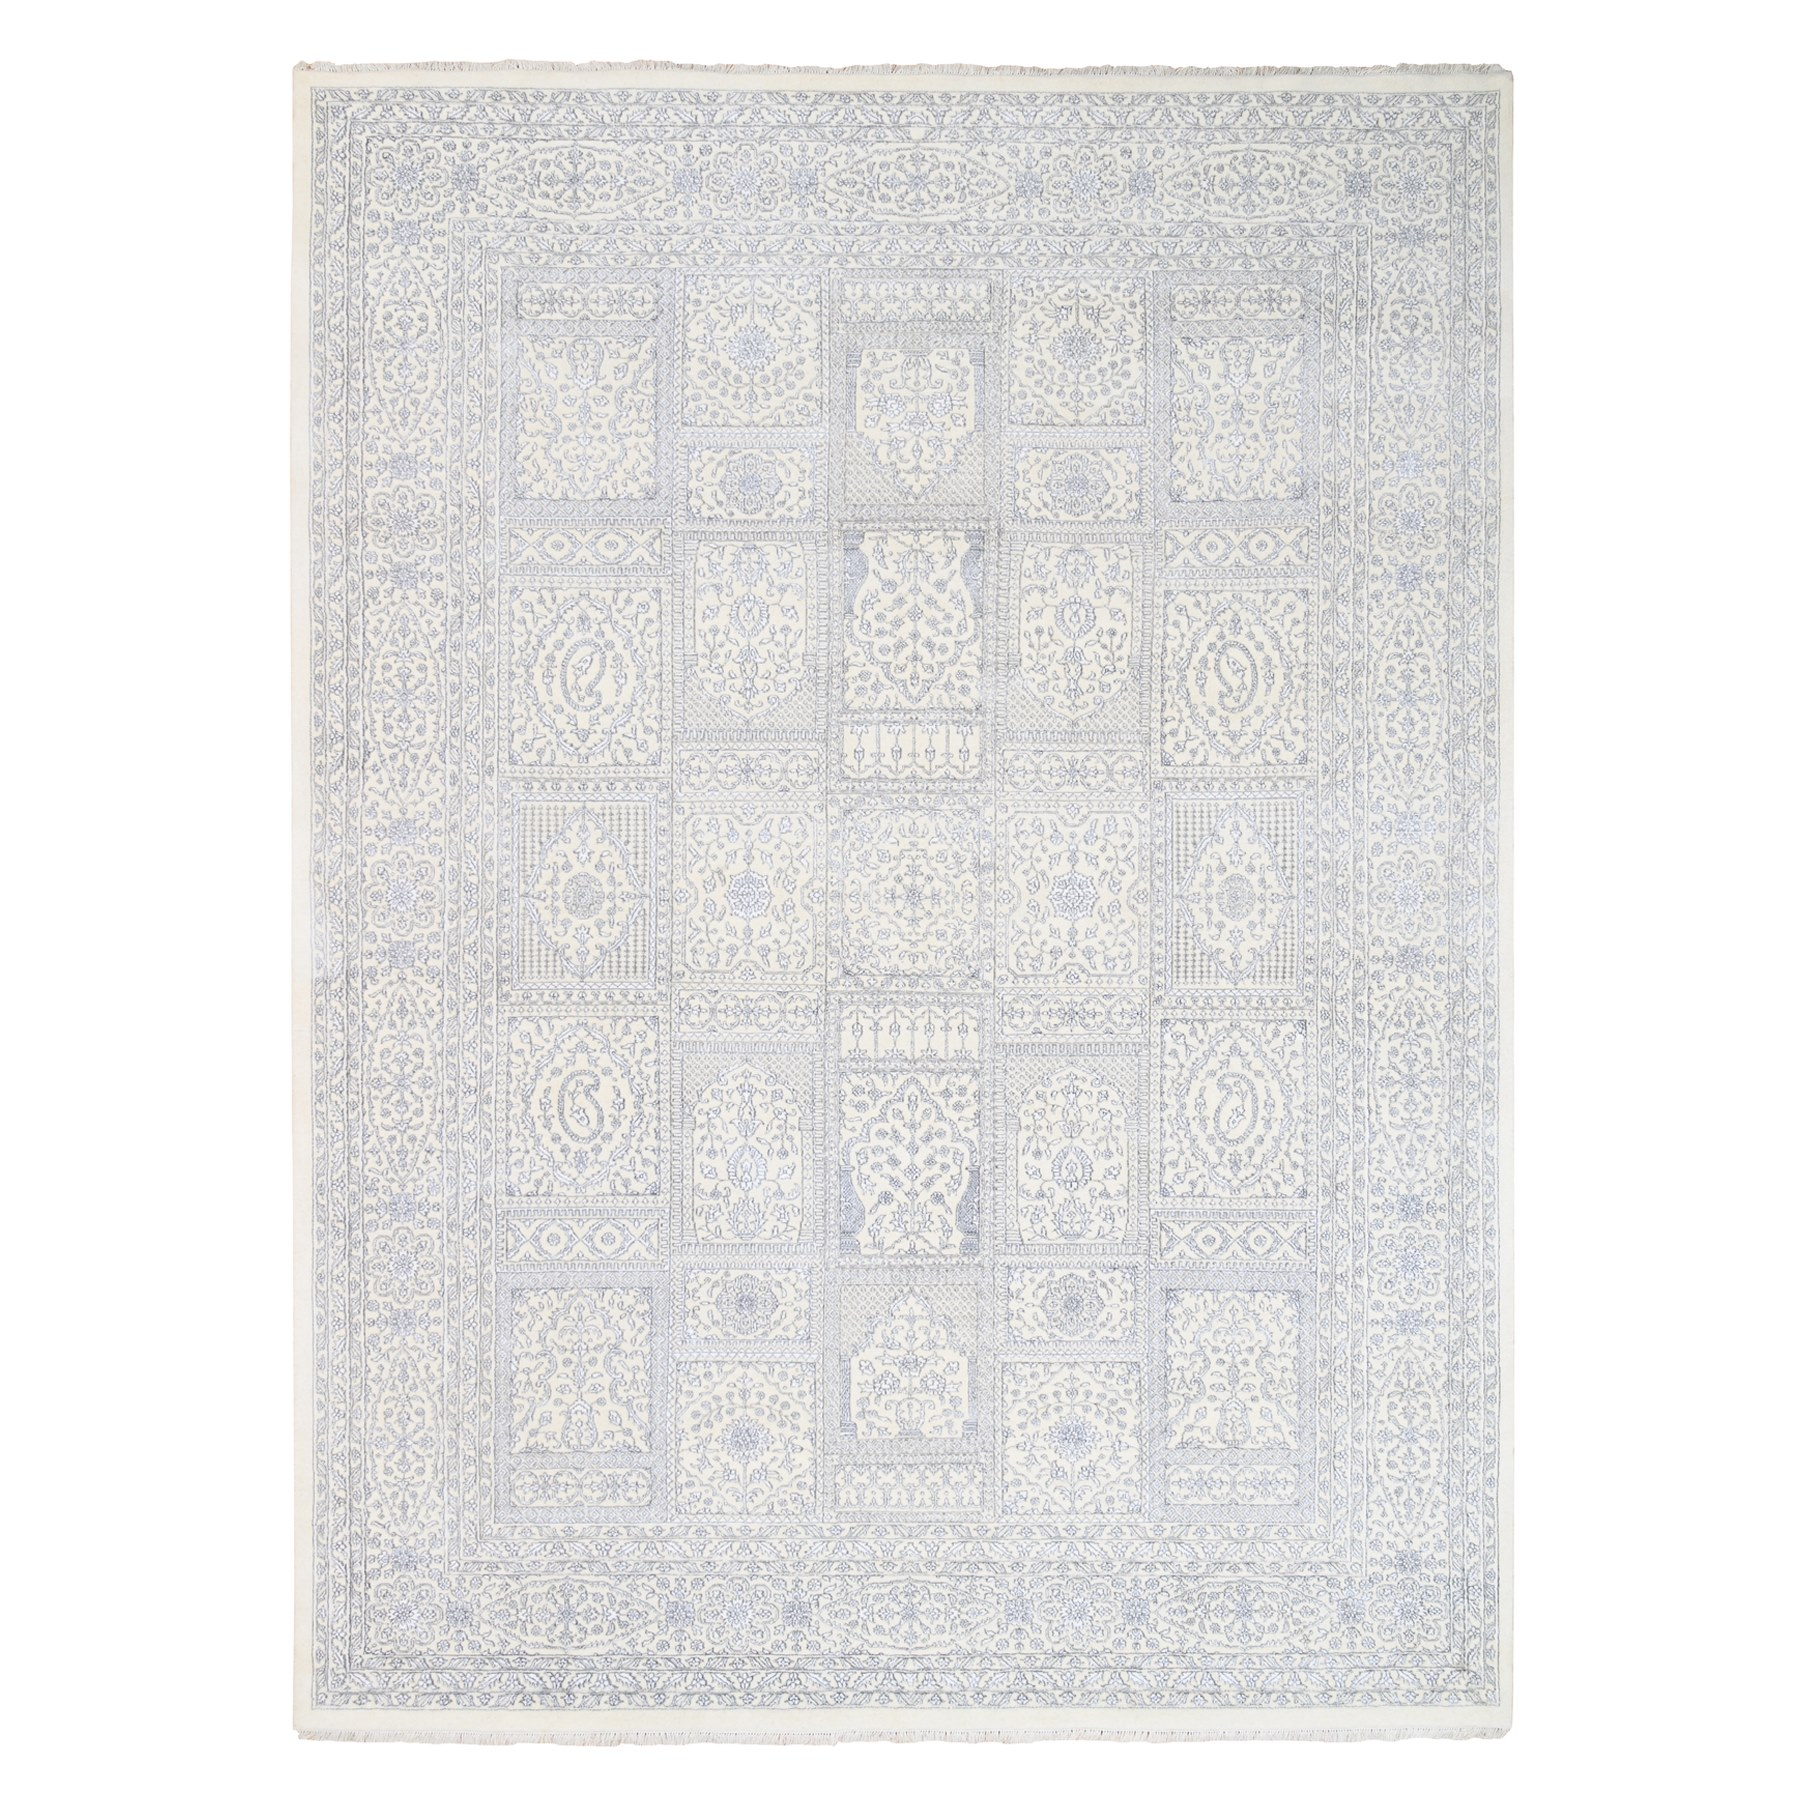 Pirniakan Collection Hand Knotted Ivory Rug No: 1124492